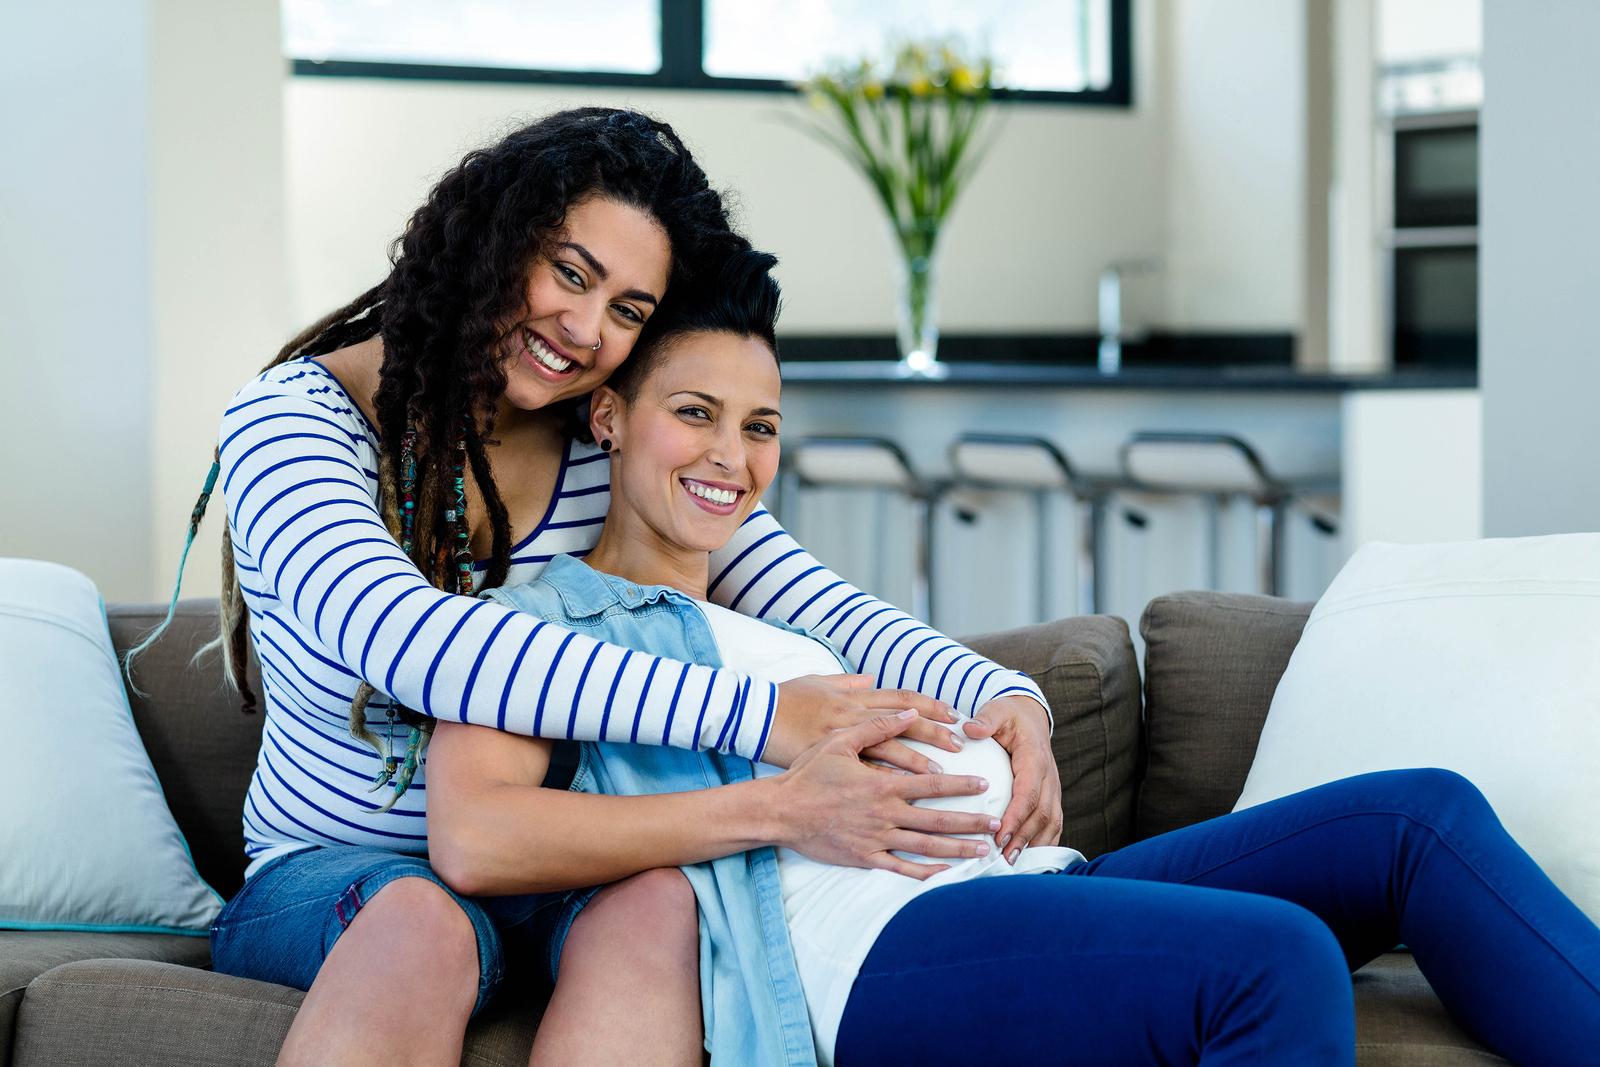 The Queer Birth Project offers support to the LGBTQ birthing community.